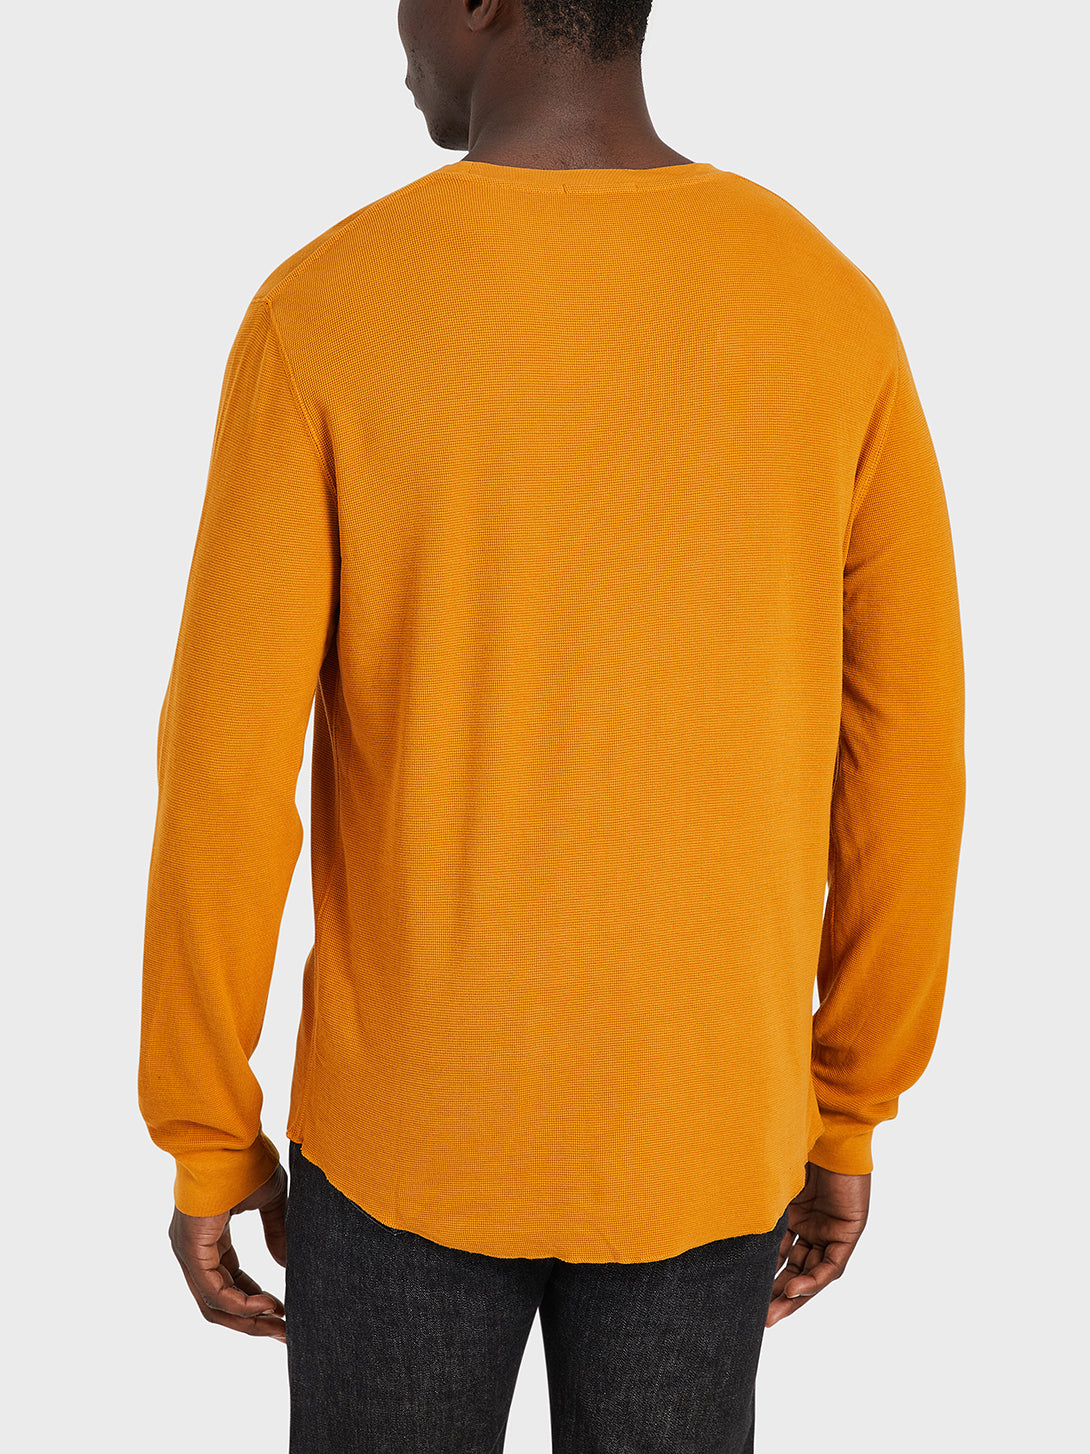 ONS Clothing Men's WAFFLE L/S VILLAGE CREW Pre-shrunk Cotton in CATHAY SPICE